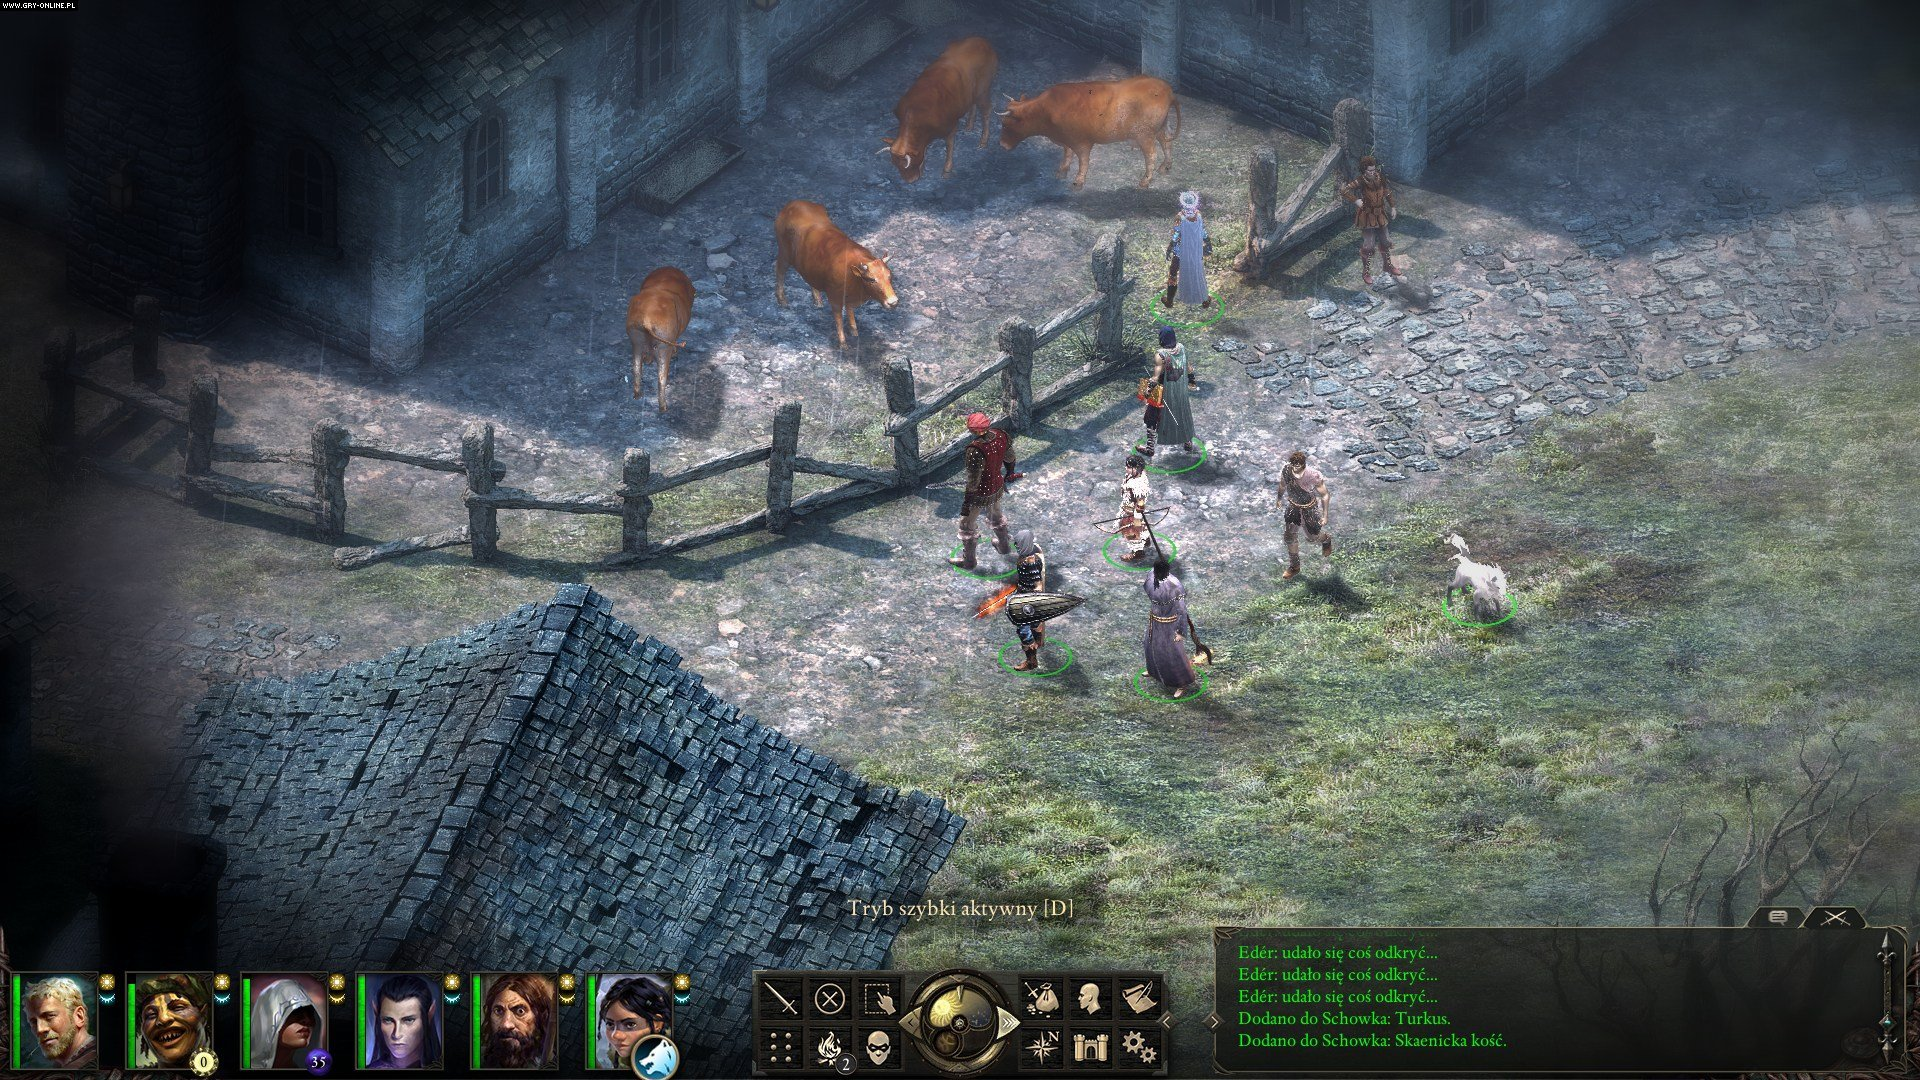 Pillars of Eternity PC Games Image 5/89, Obsidian Entertainment, Paradox Interactive